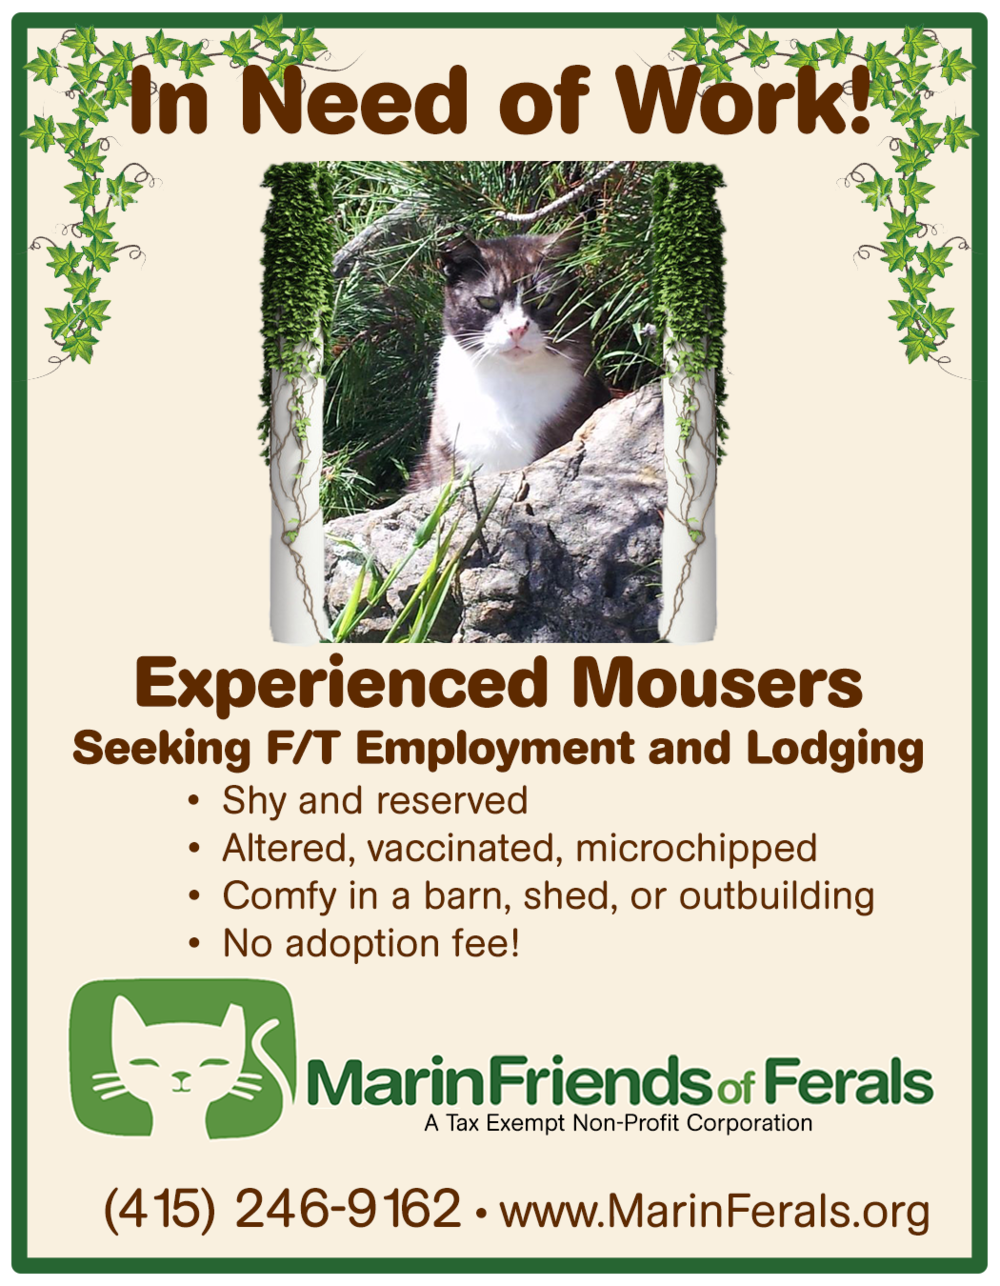 Marin Friends of Ferals